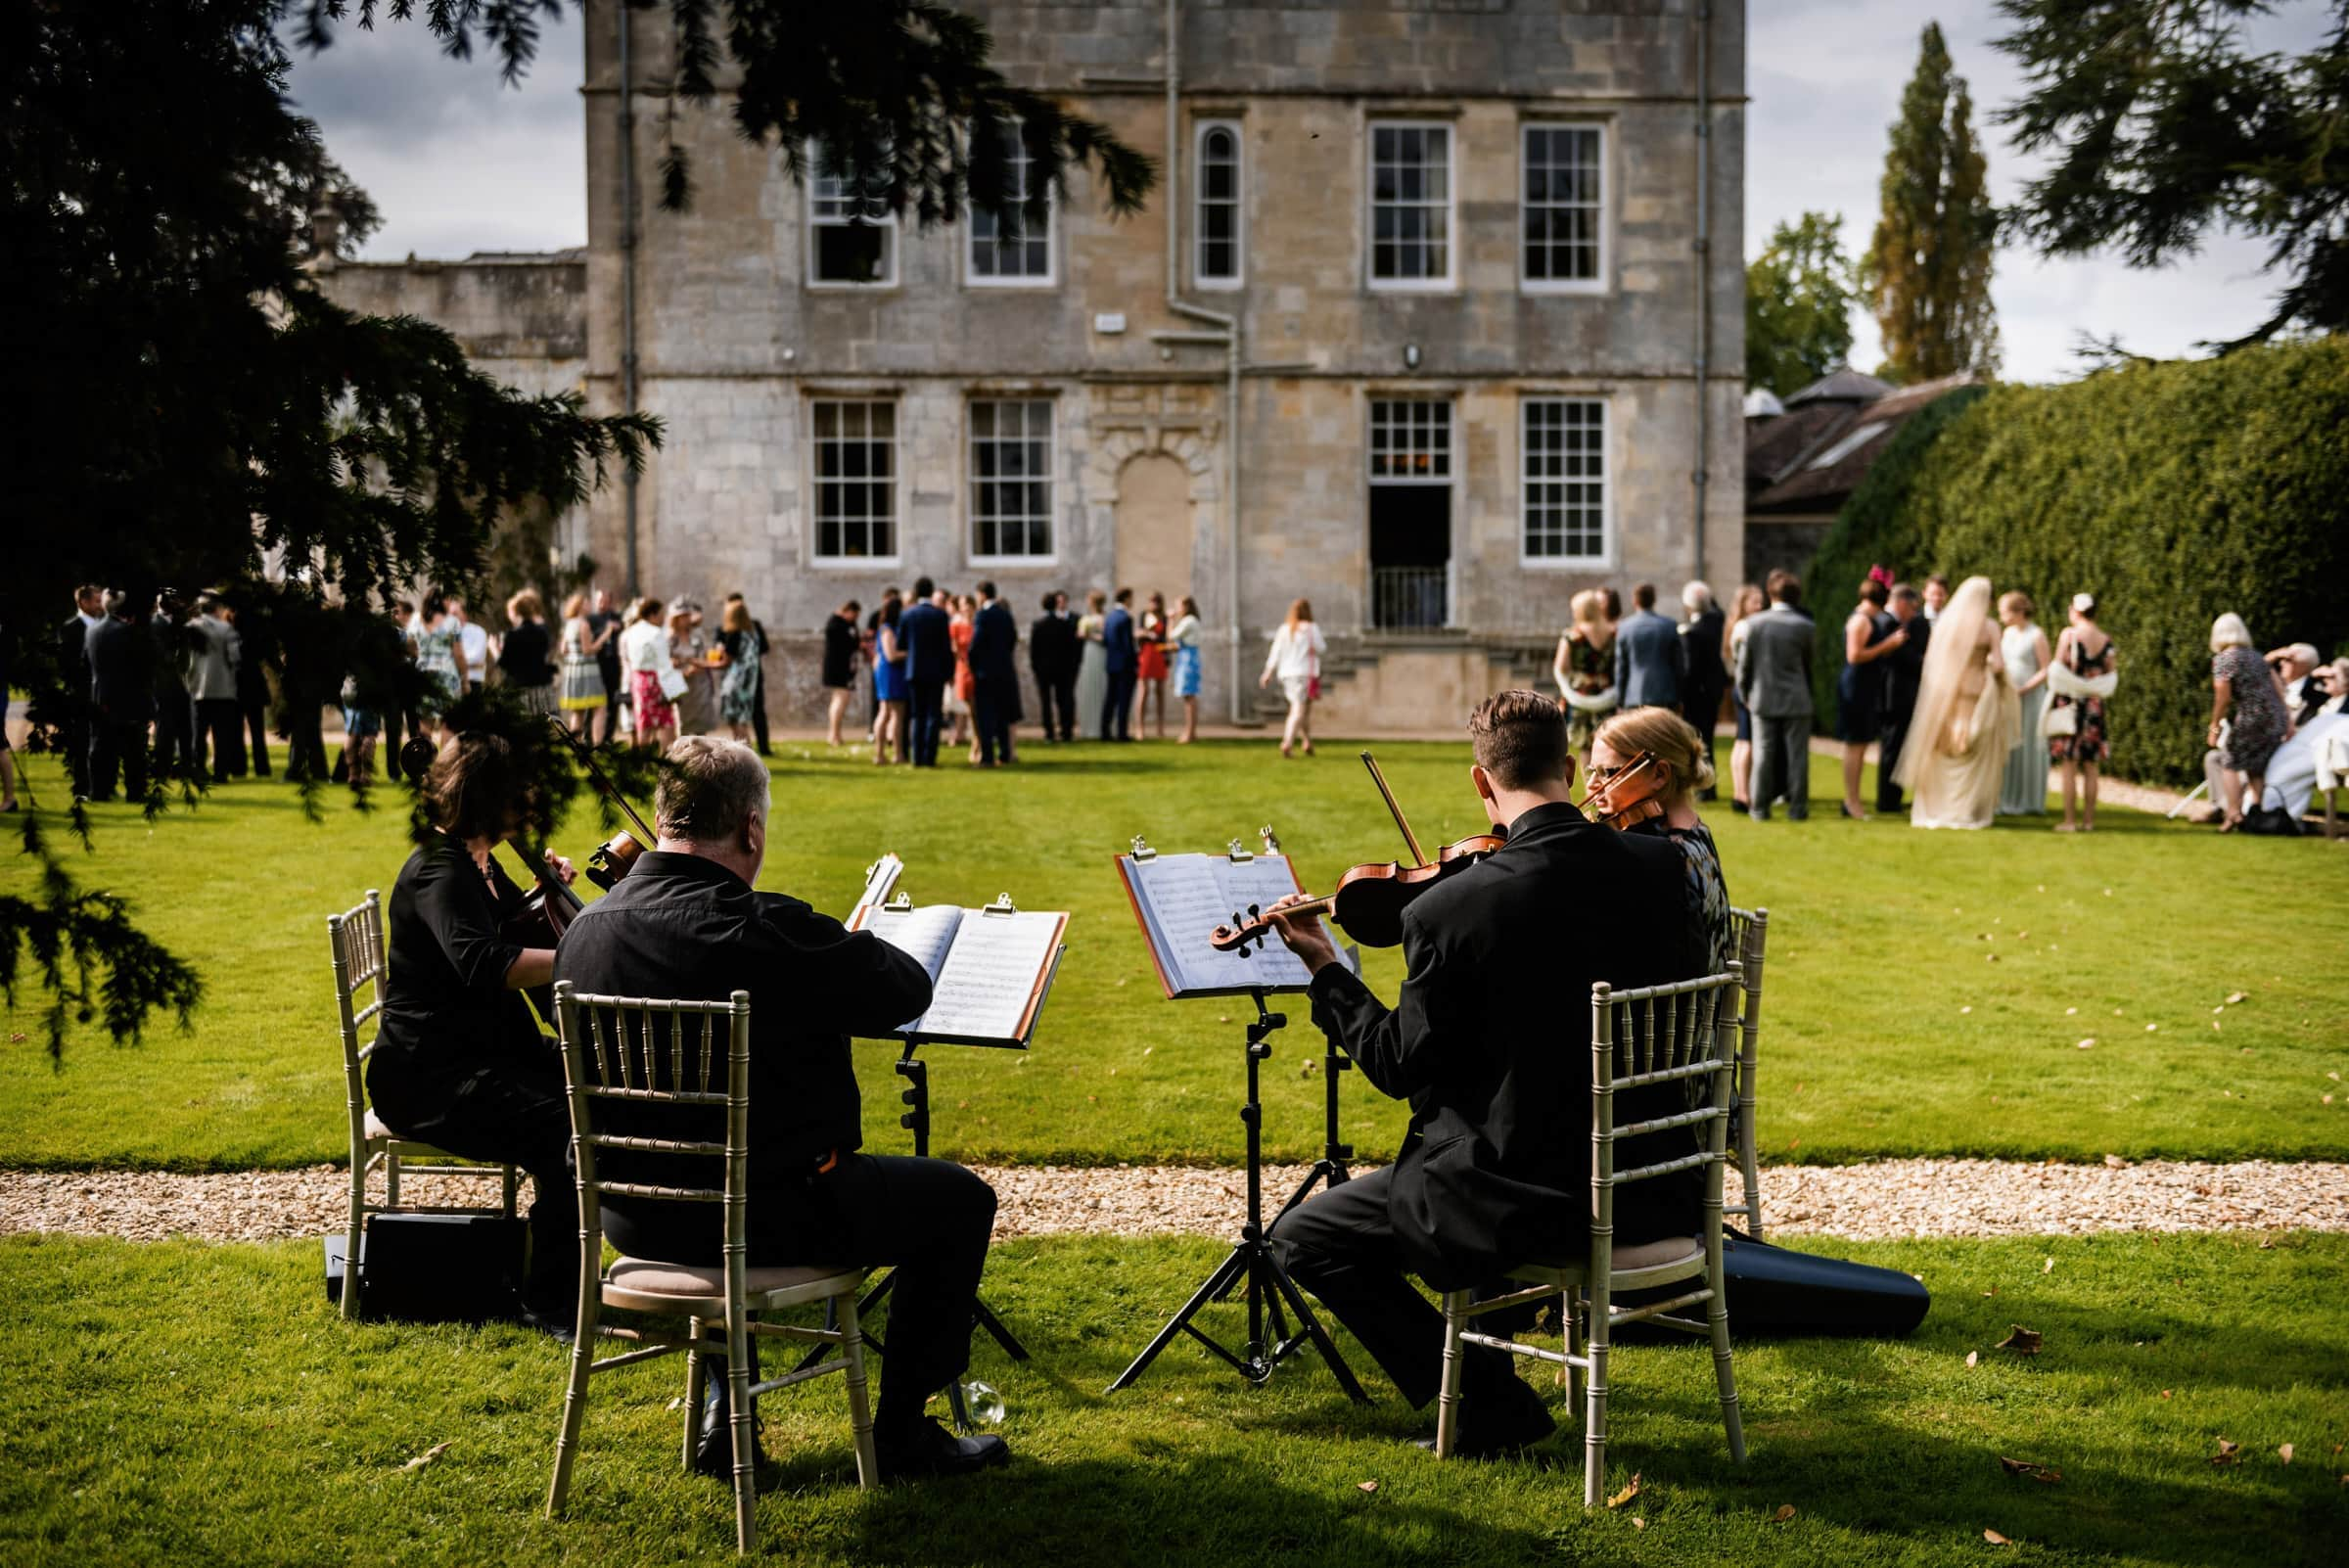 Musicians play during wedding reception with guests on lawn